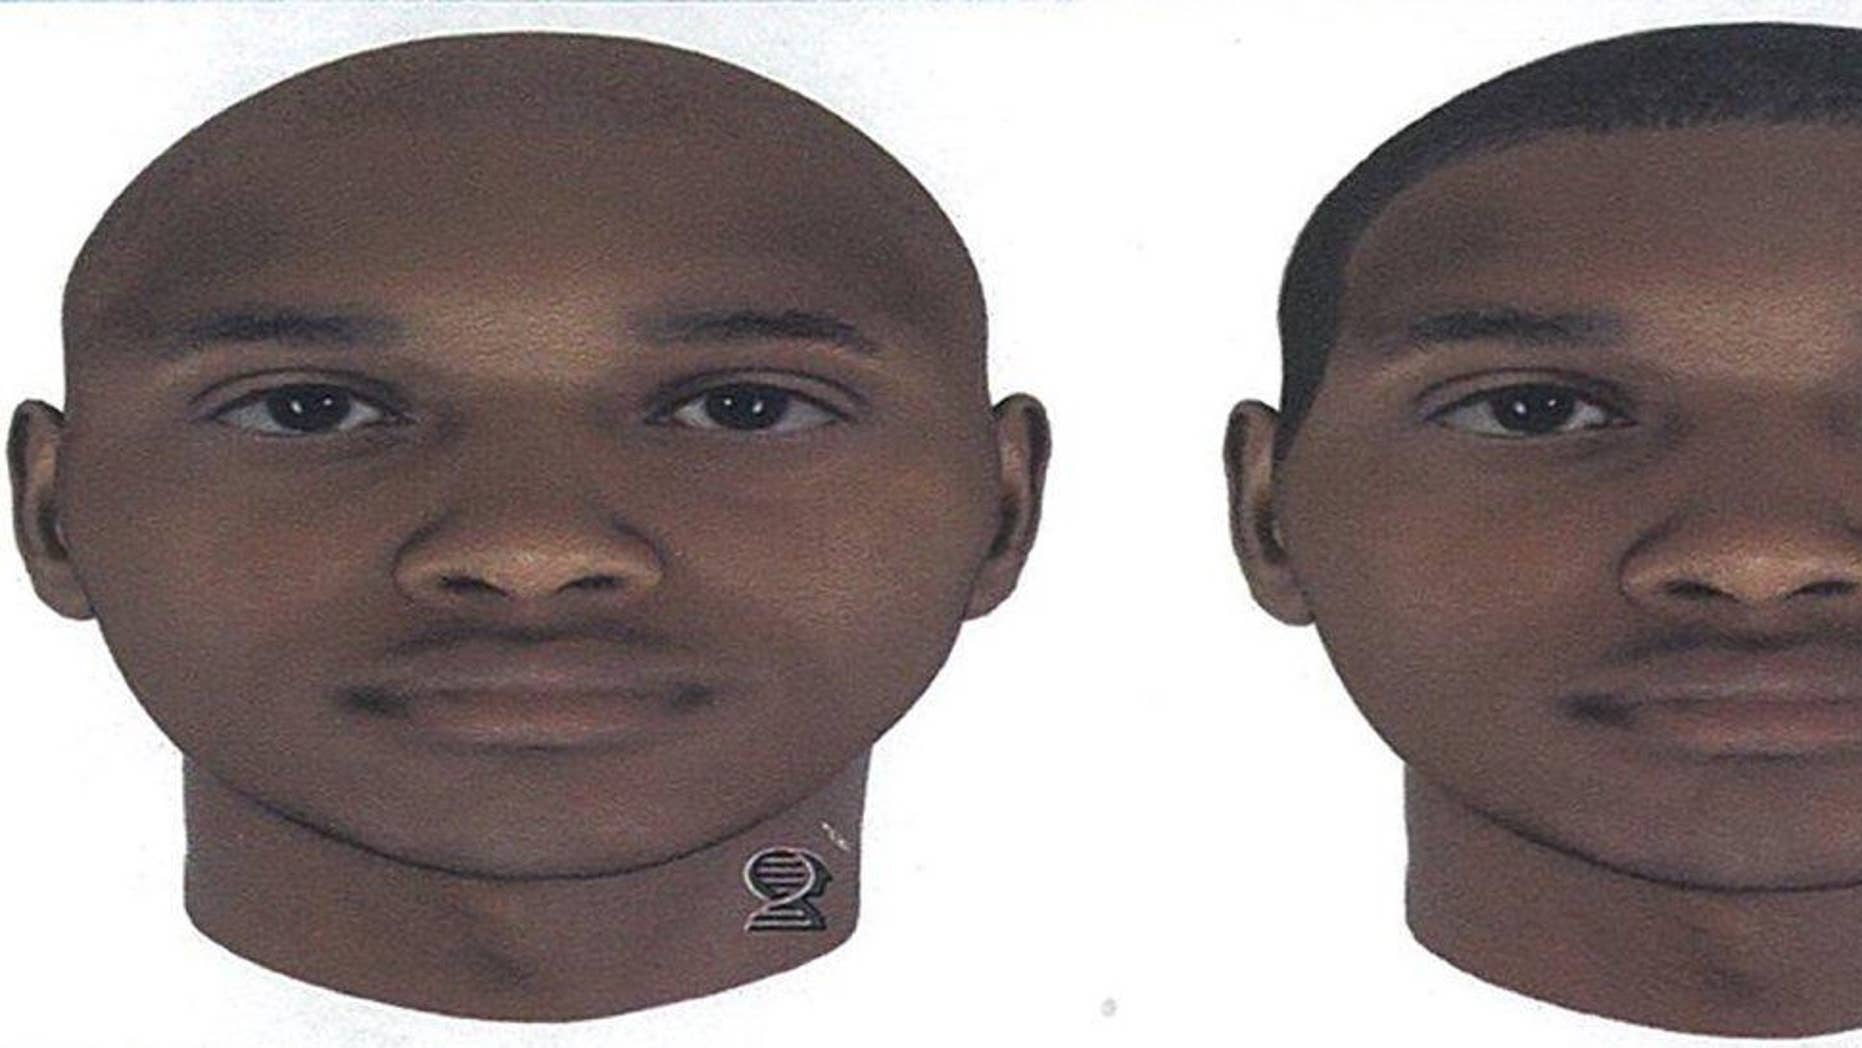 The NYPD is using a new DNA test to help identify a dismembered man found in Brooklyn, NY in 2005.